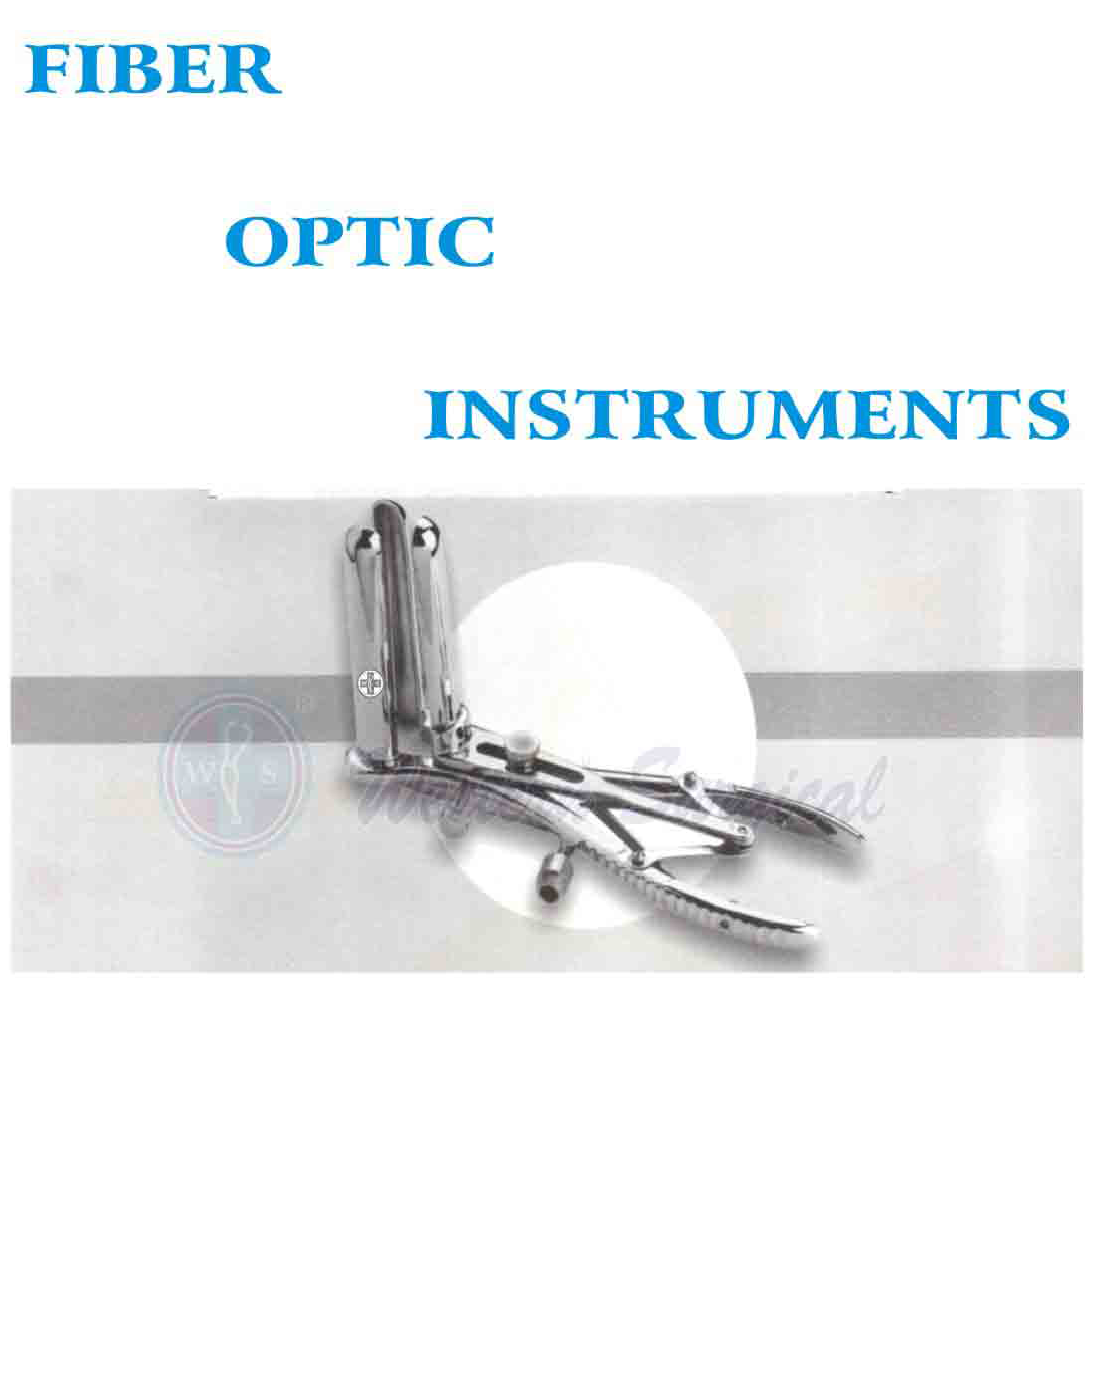 Fiber optic instruments